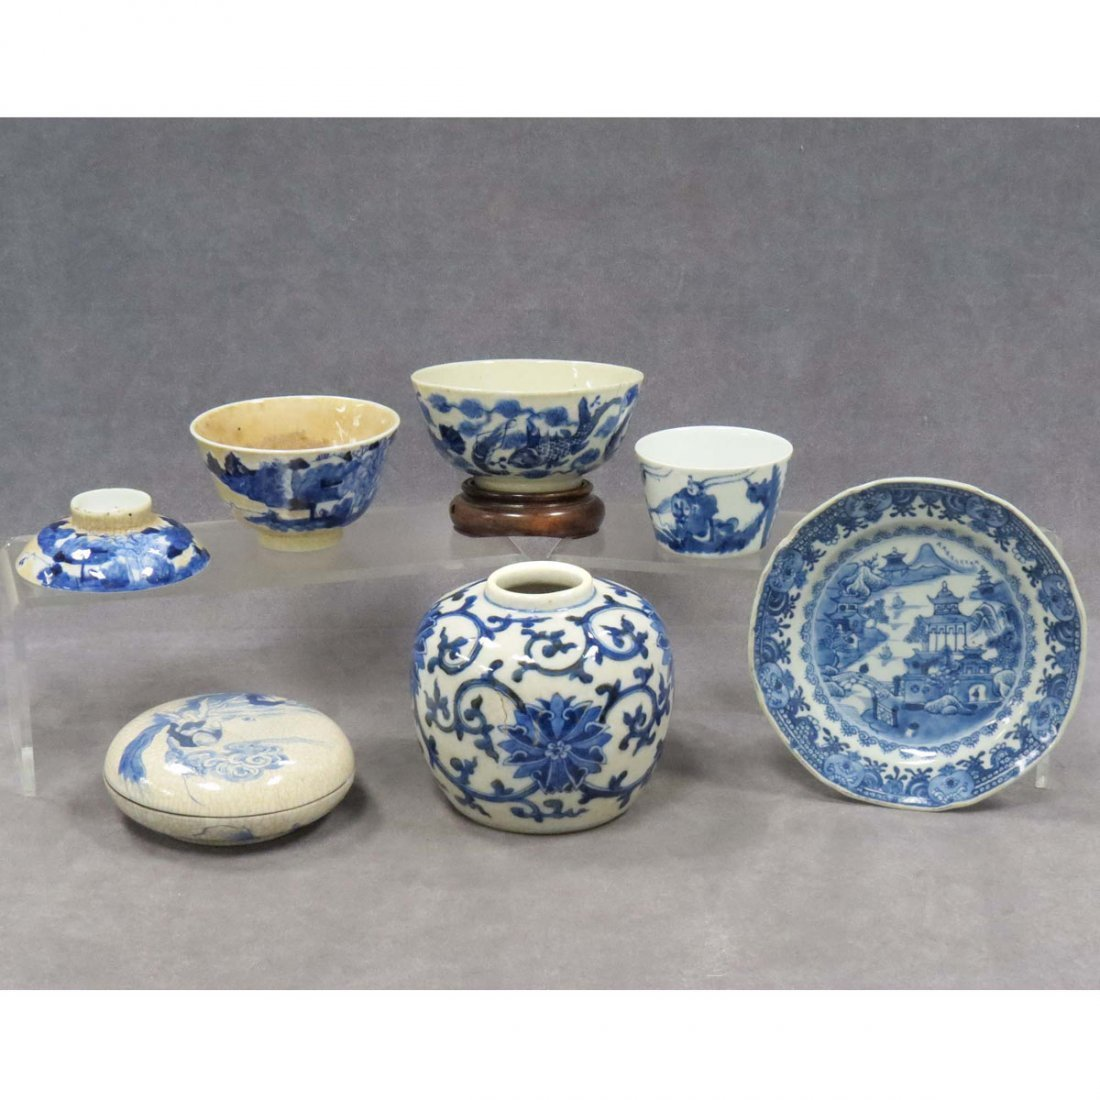 LOT (6) CHINESE DECORATED PORCELAIN